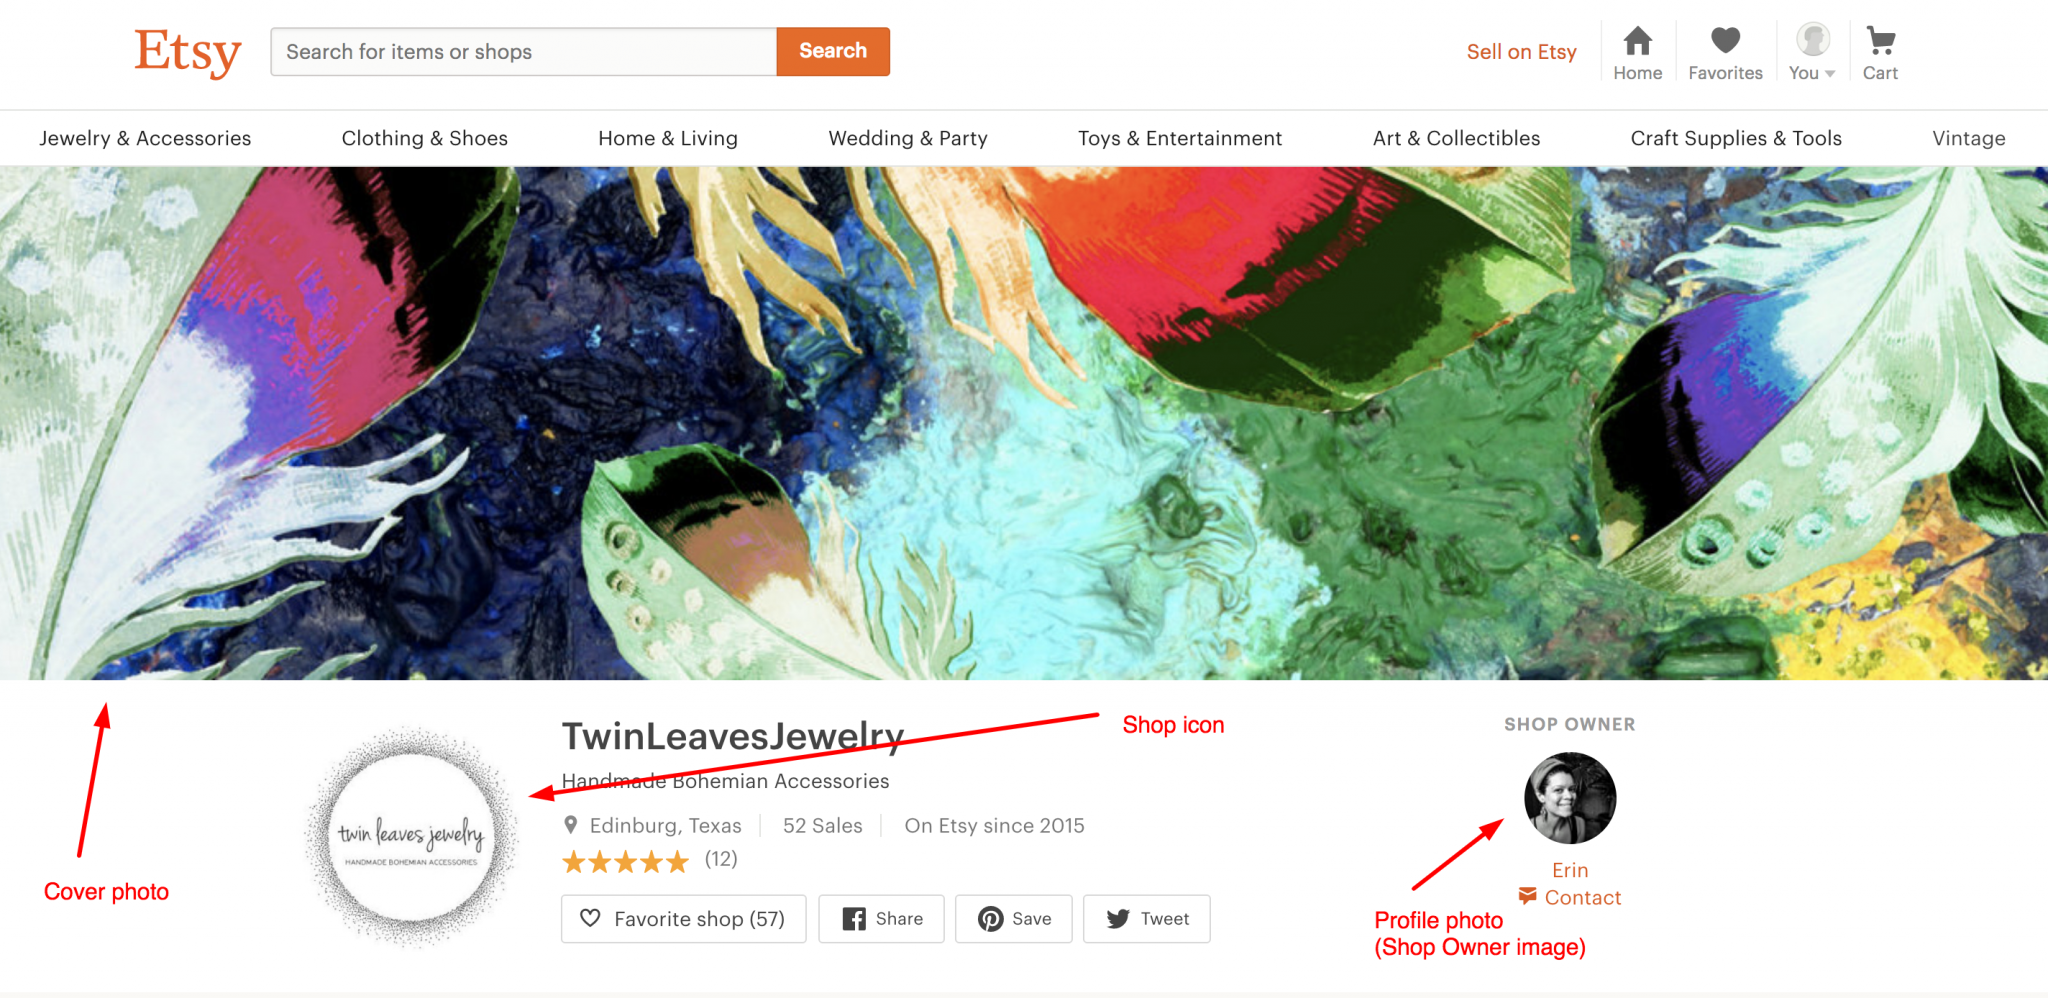 How to design an Etsy cover photo and shop icon